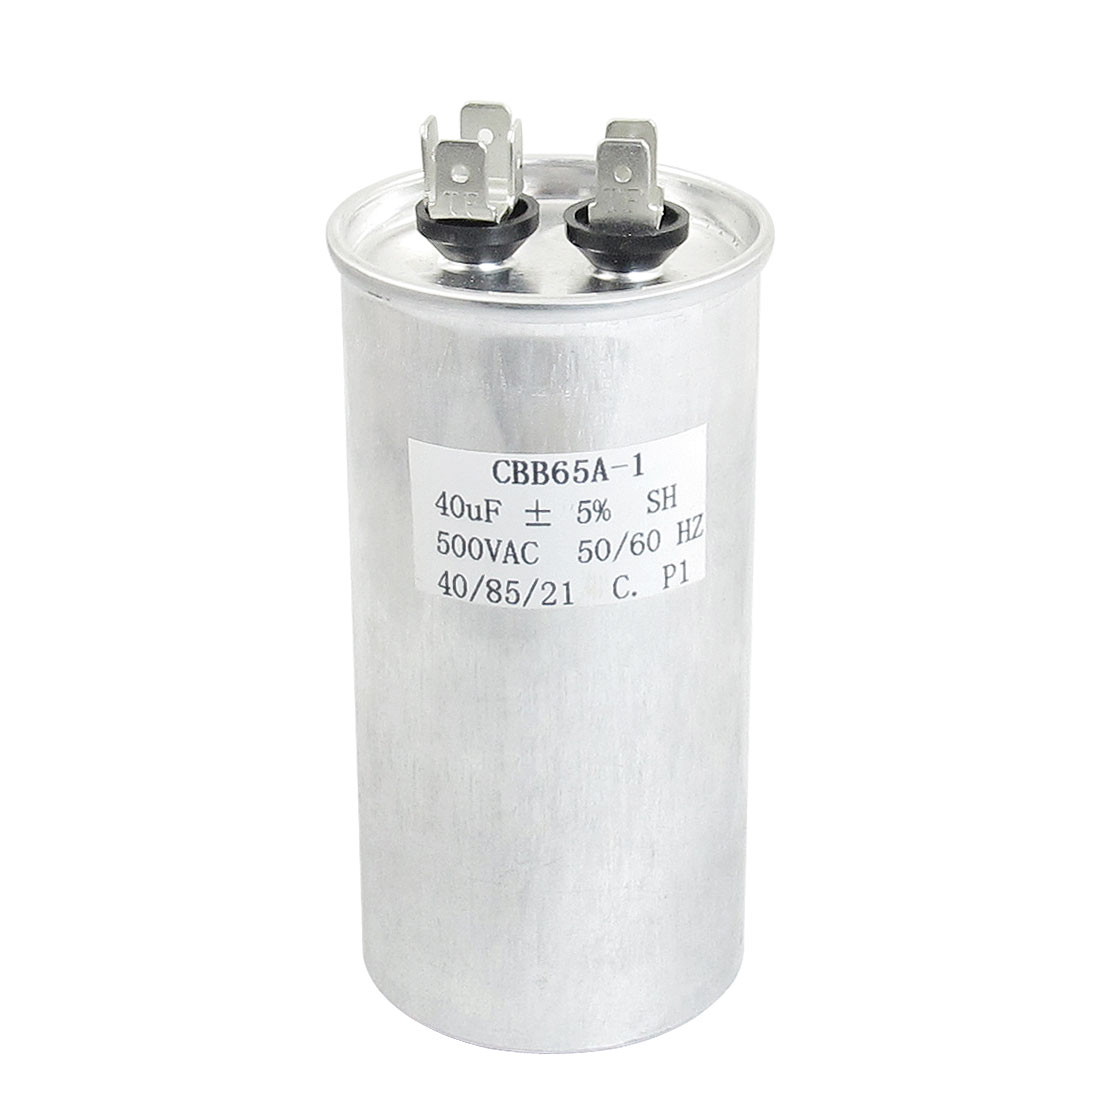 Air Conditioner Non Polar 40uF AC 500V 50/60Hz Motor Capacitor CBB65A-1